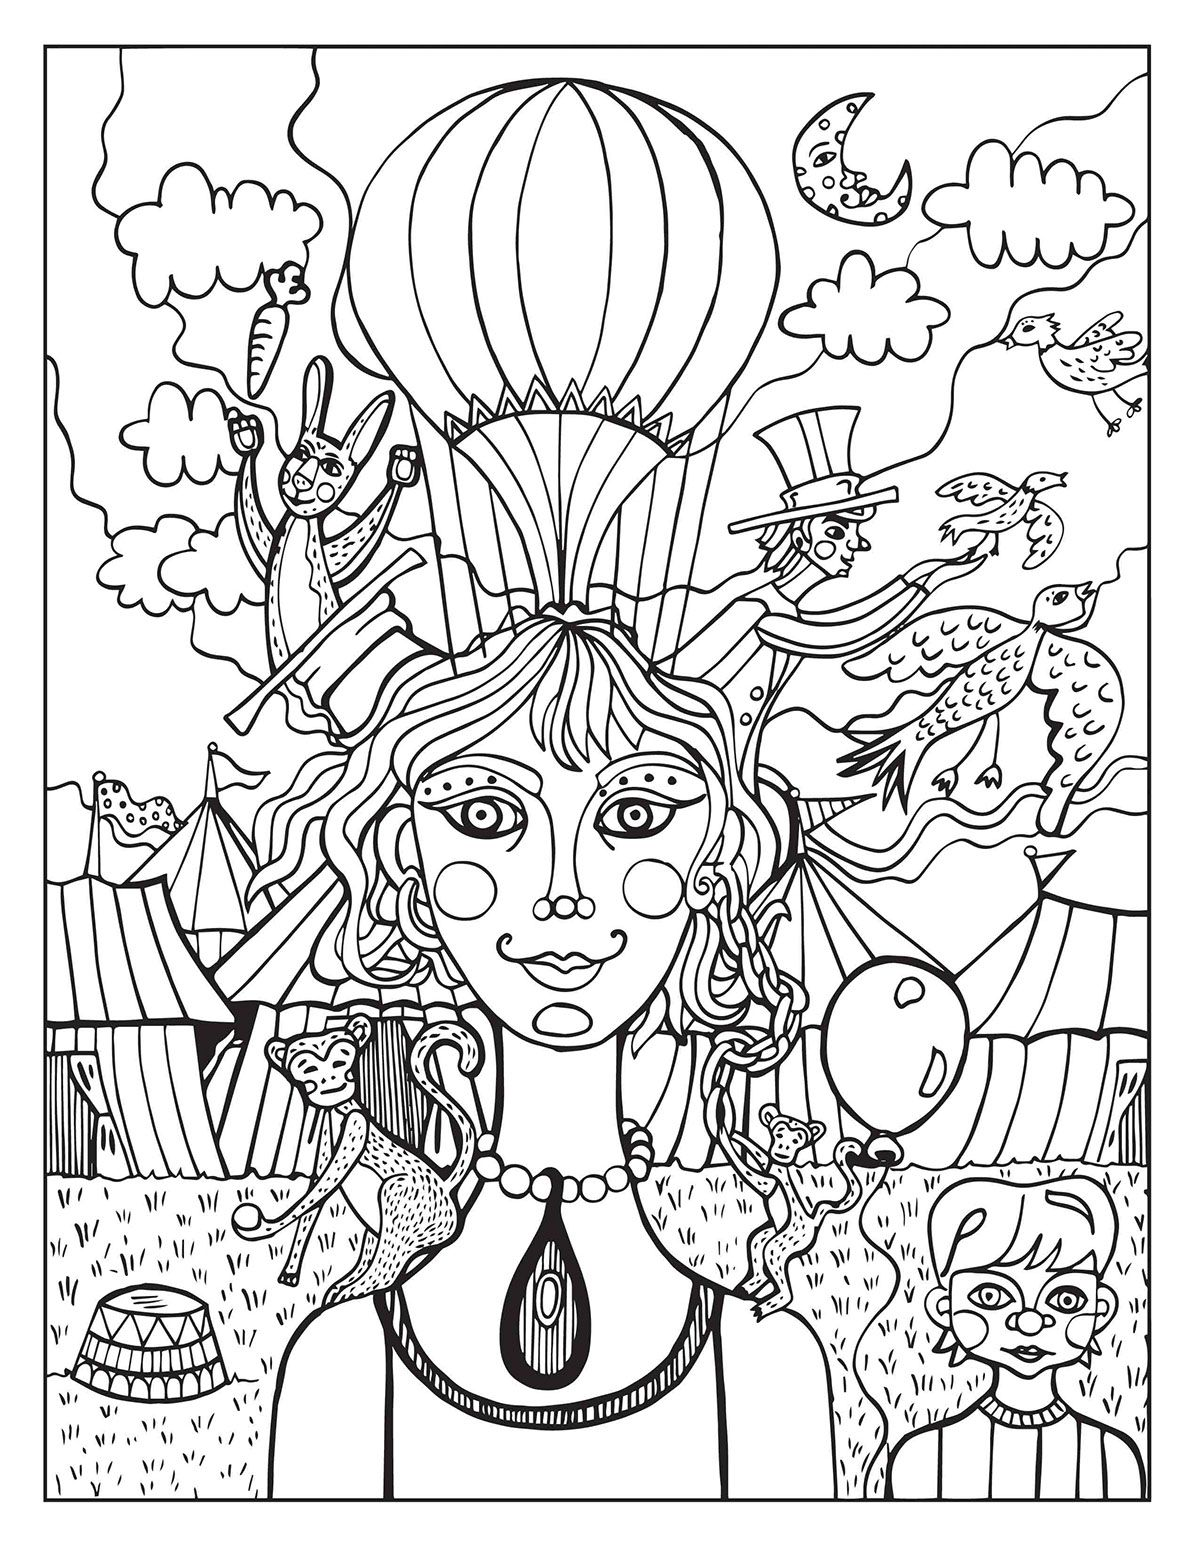 A Day At The Circus Coloring Page On Behance Circus Pinterest